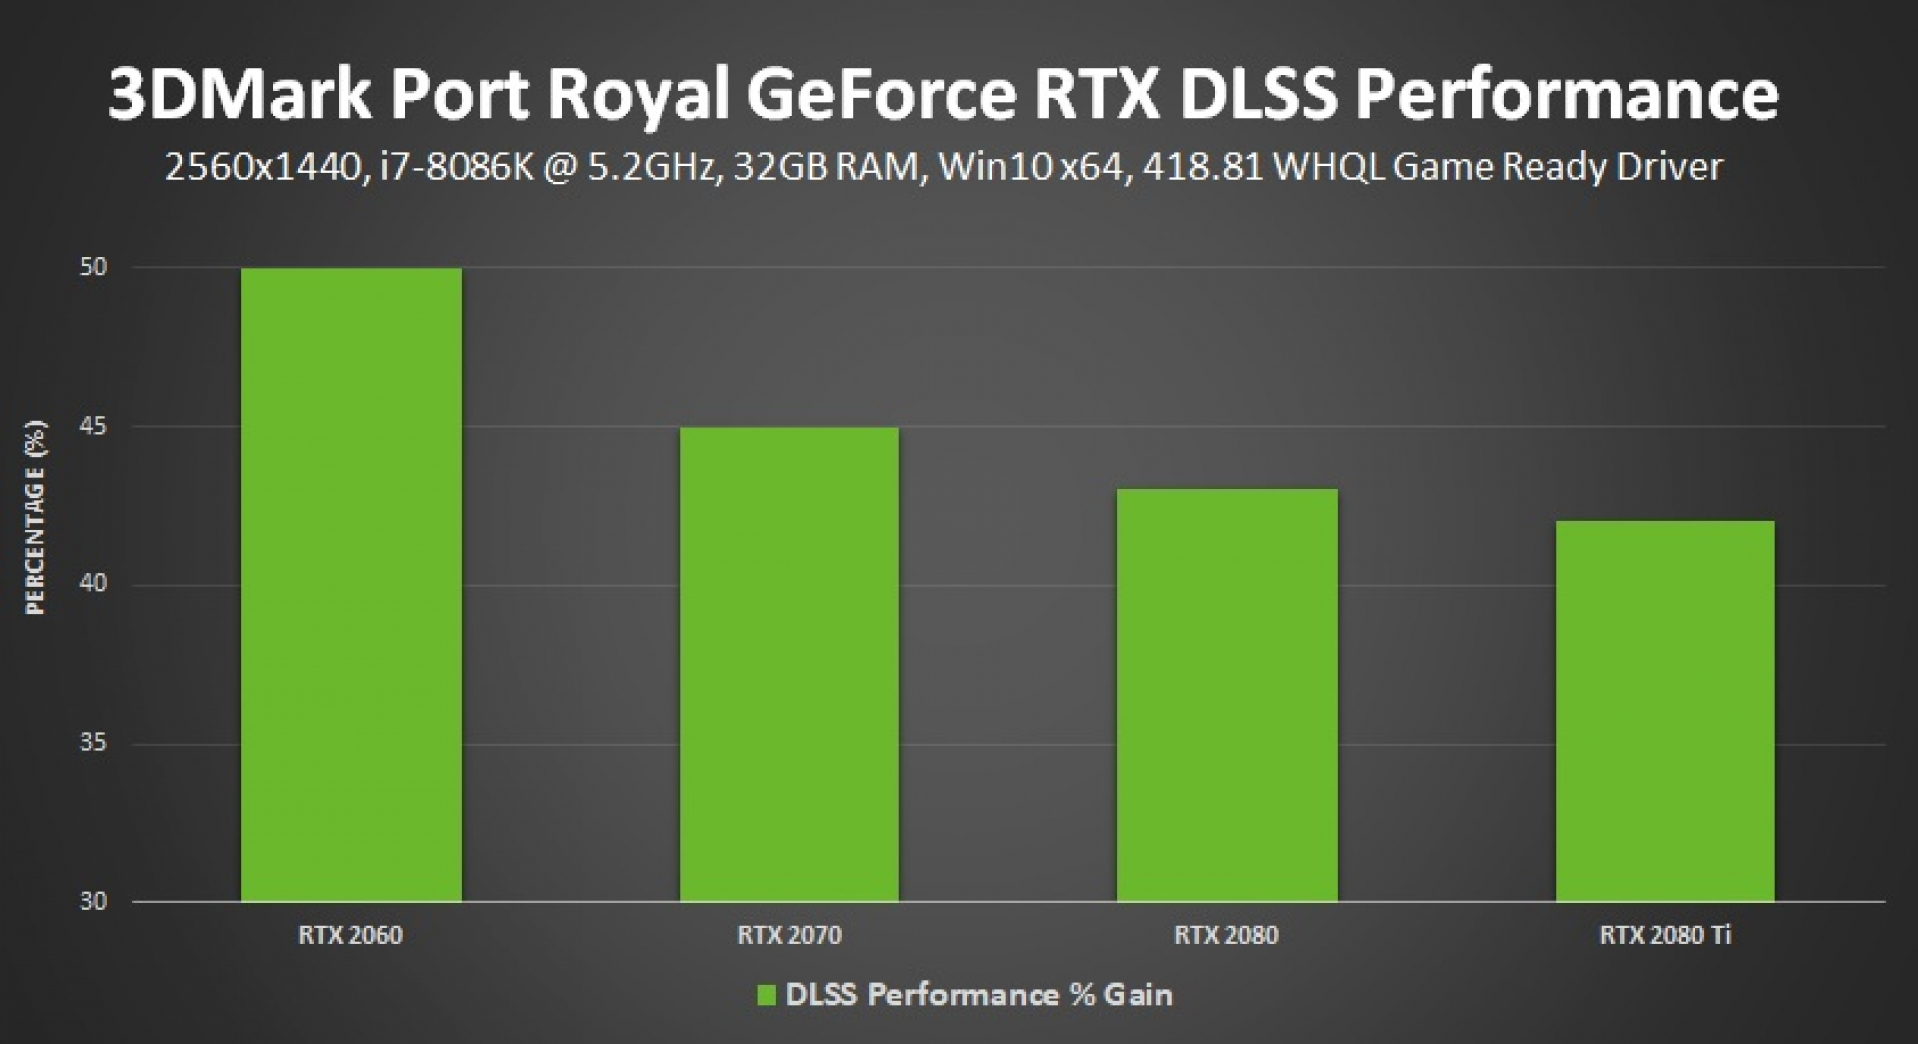 Nvidia's DLSS Tech Can Almost Doubles The RTX 2080 Ti's